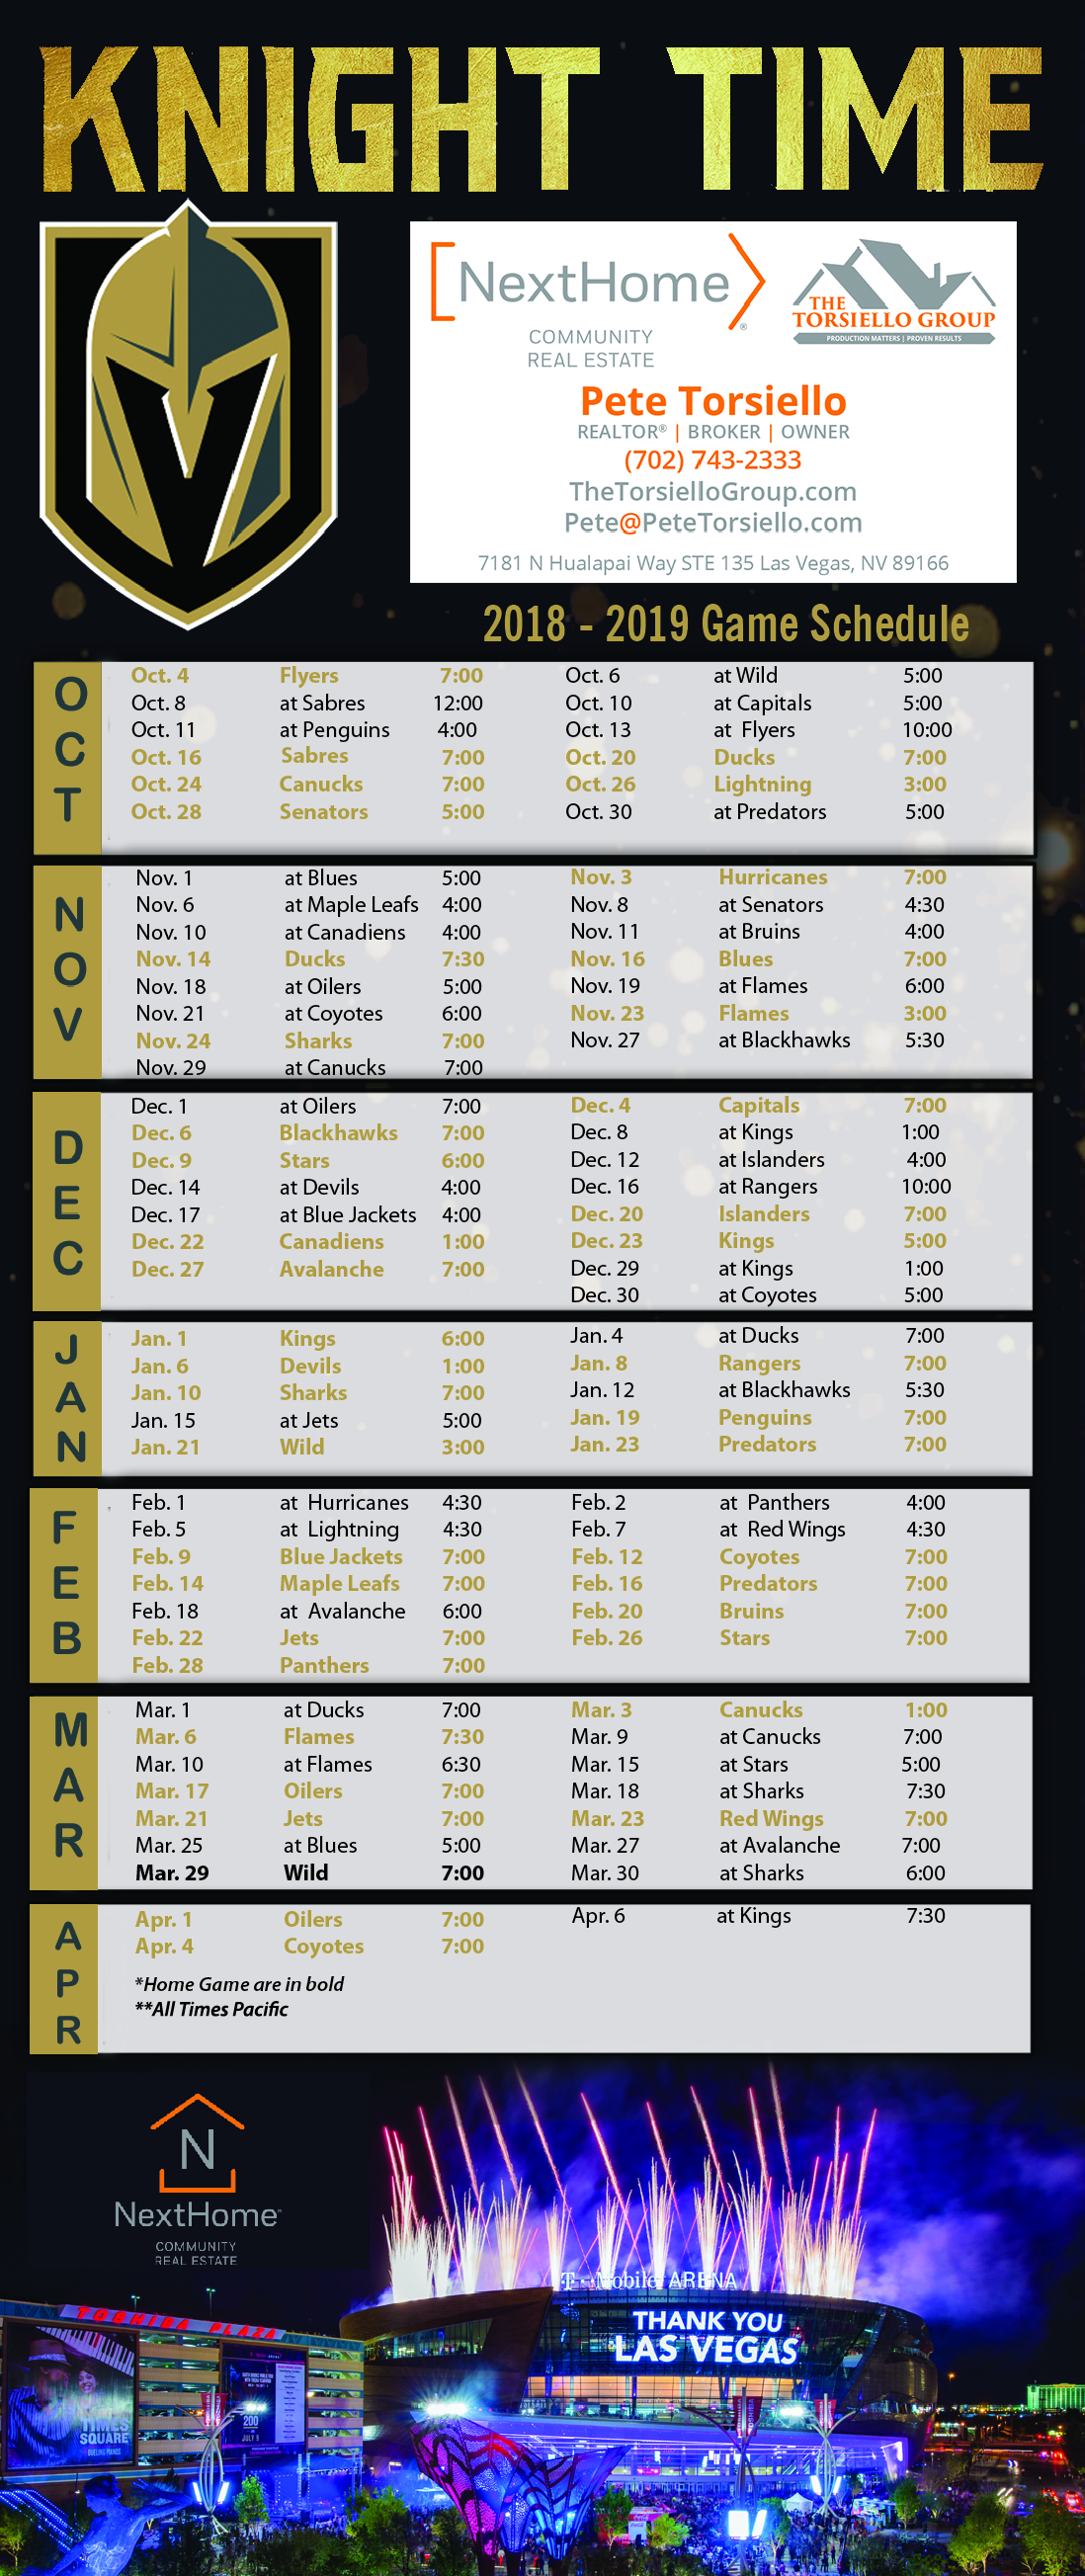 View Larger Image Vegas Knight 2018-2019 Game Schedule Magnet Rack Card  NextHome Torsiello 1decd5ebe